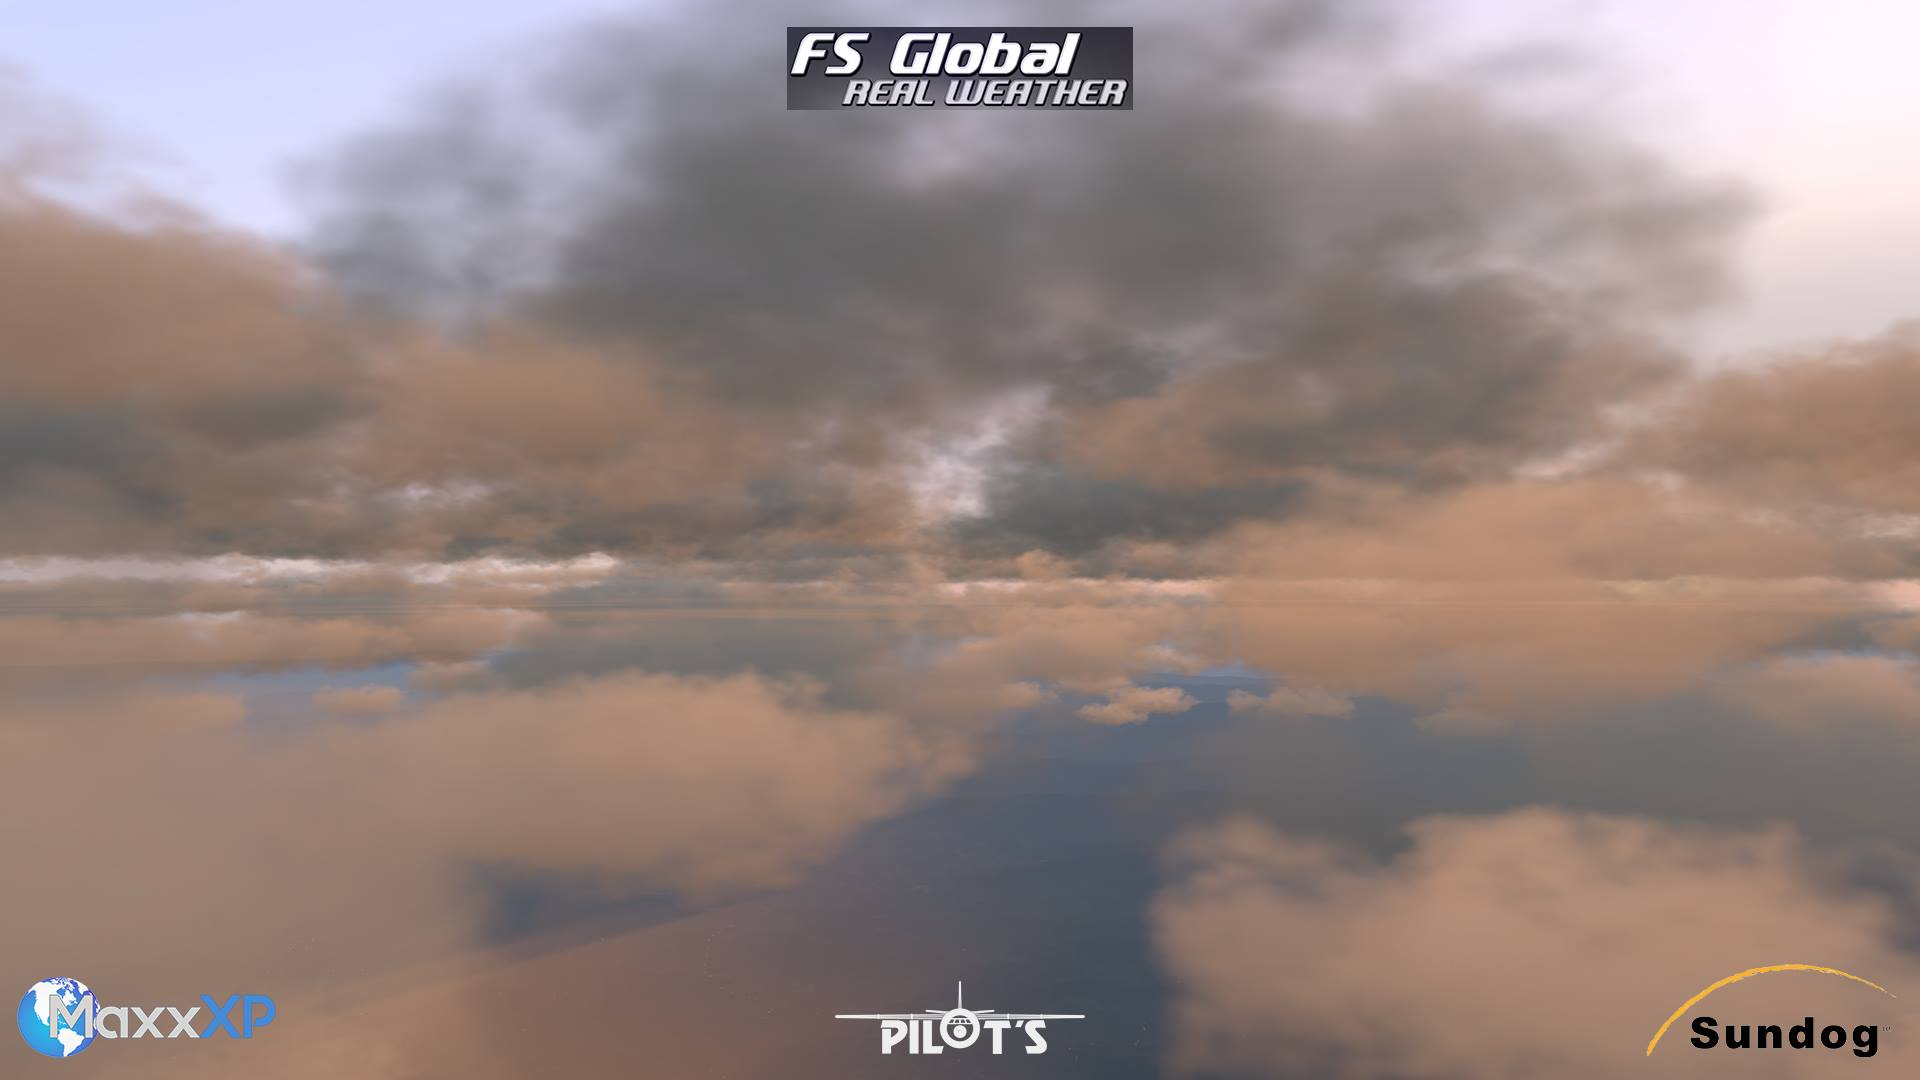 Announcing X-Plane integration with FS Global Real Weather